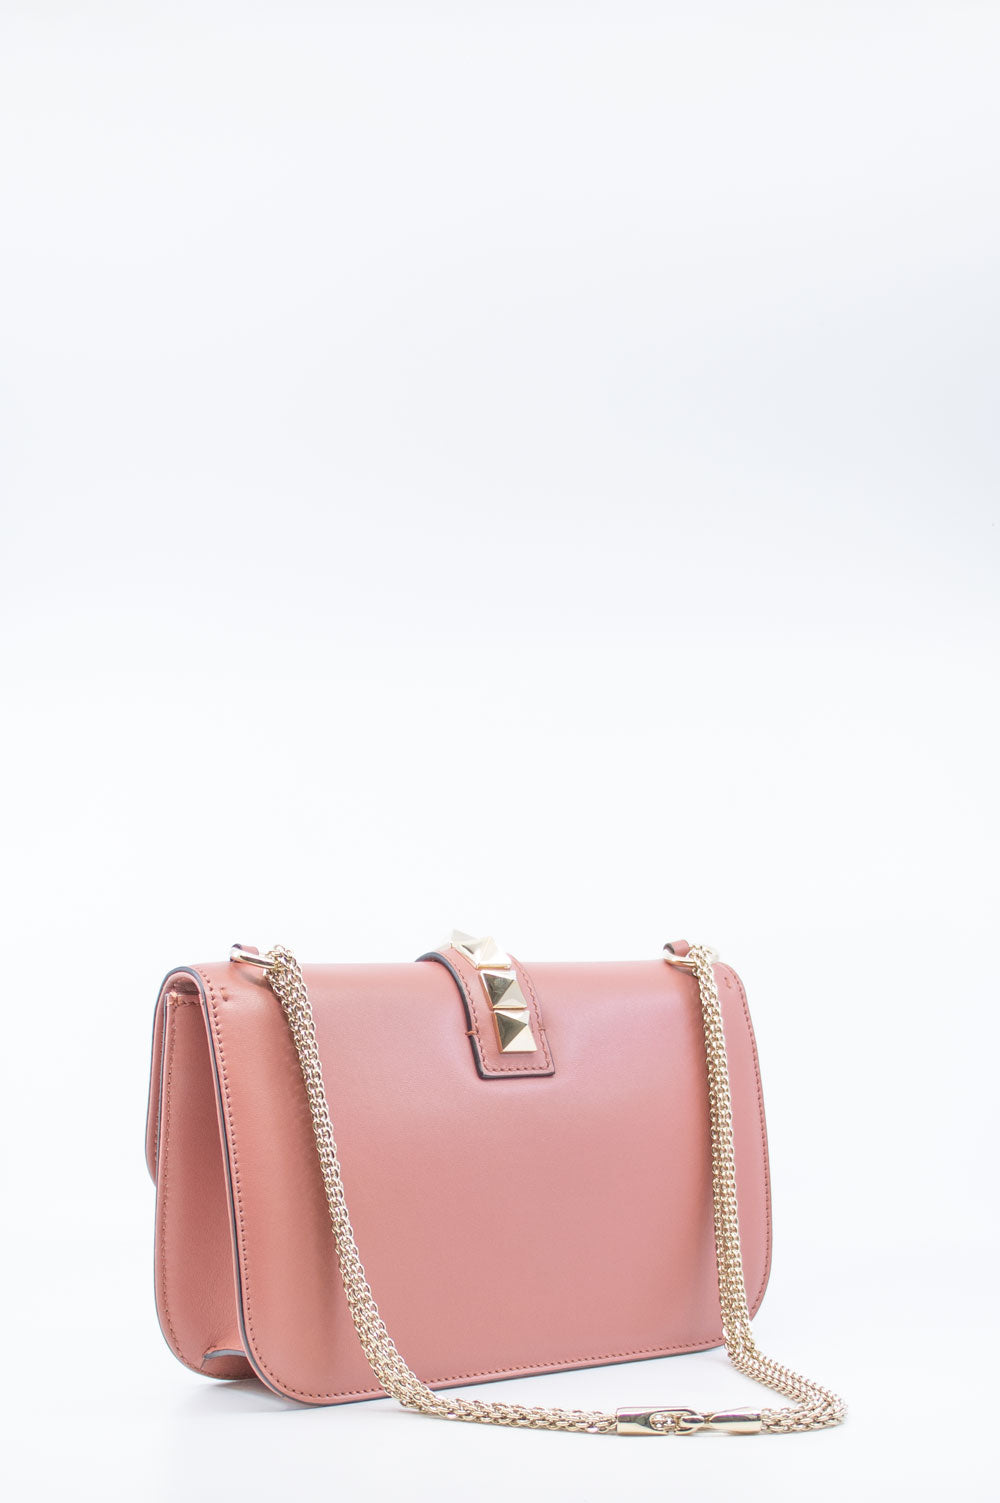 VALENTINO Rockstud Lock Bag Pink Leather